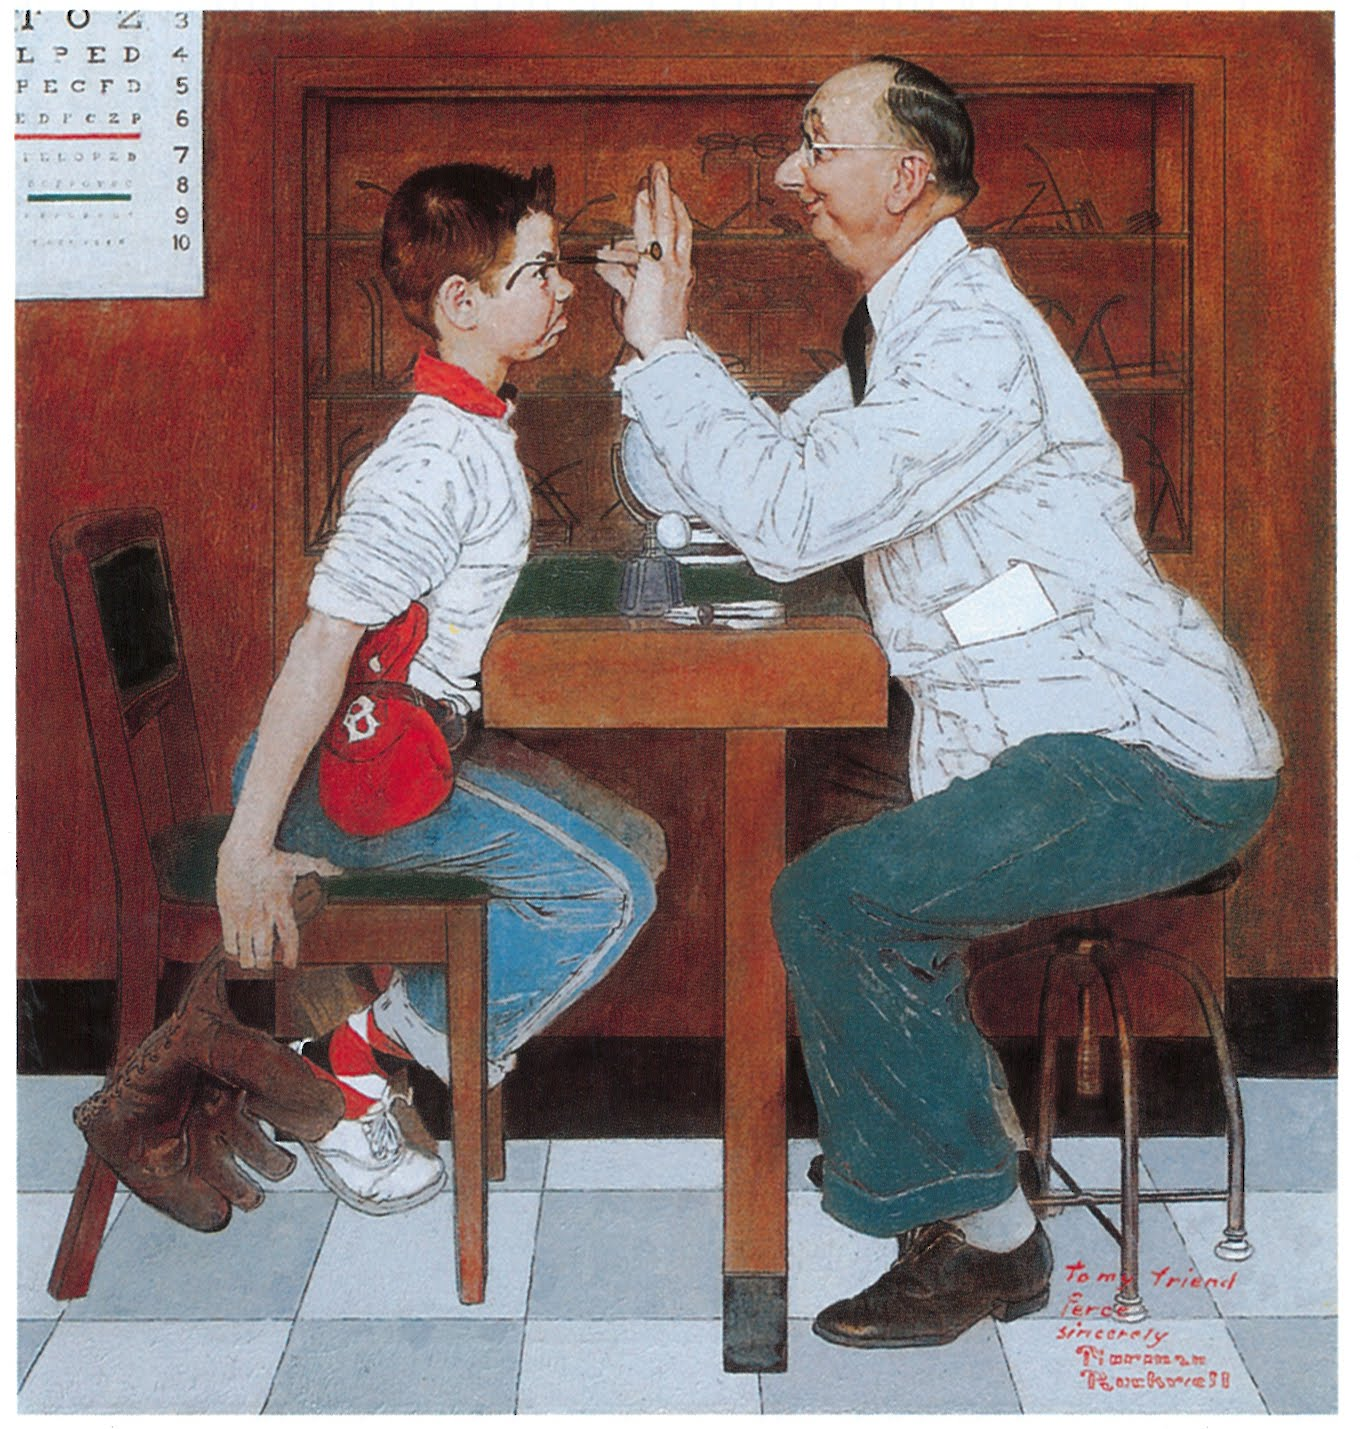 a biography of norman rockwell one of americas greatest illustrators The american illustrators gallery, along with the national museum of american illustration, newport, ri, organize and curate exhibitions for loan to institutions to display the greatest american illustrators to new audiences throughout the united states and around the world.